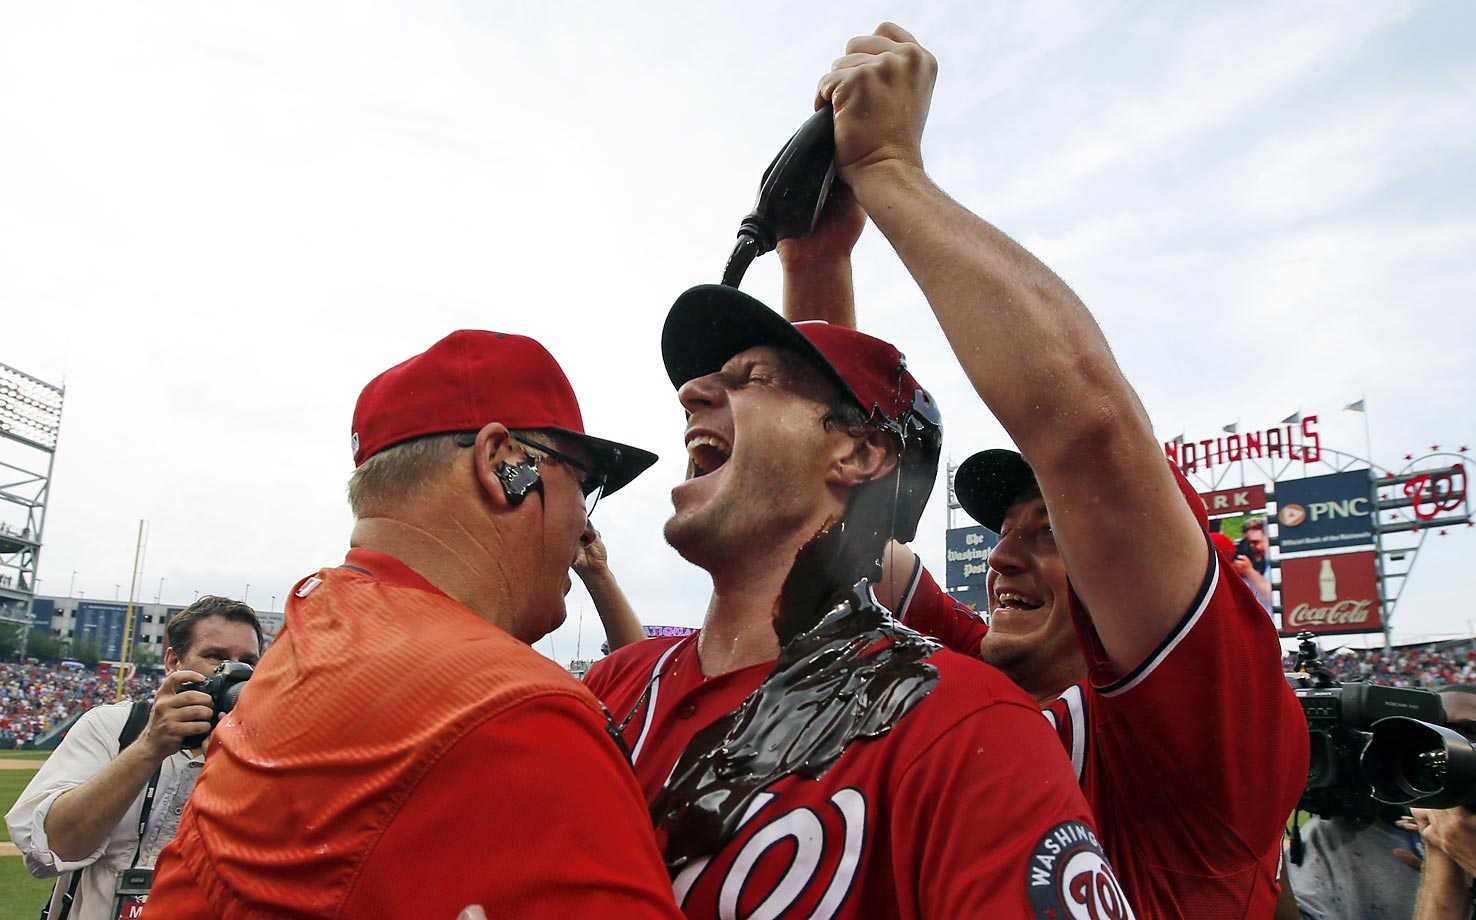 Jordan Zimmermann of the Washington Nationals douses starting pitcher Max Scherzer with chocolate syrup after Scherzer threw a no-hitter.